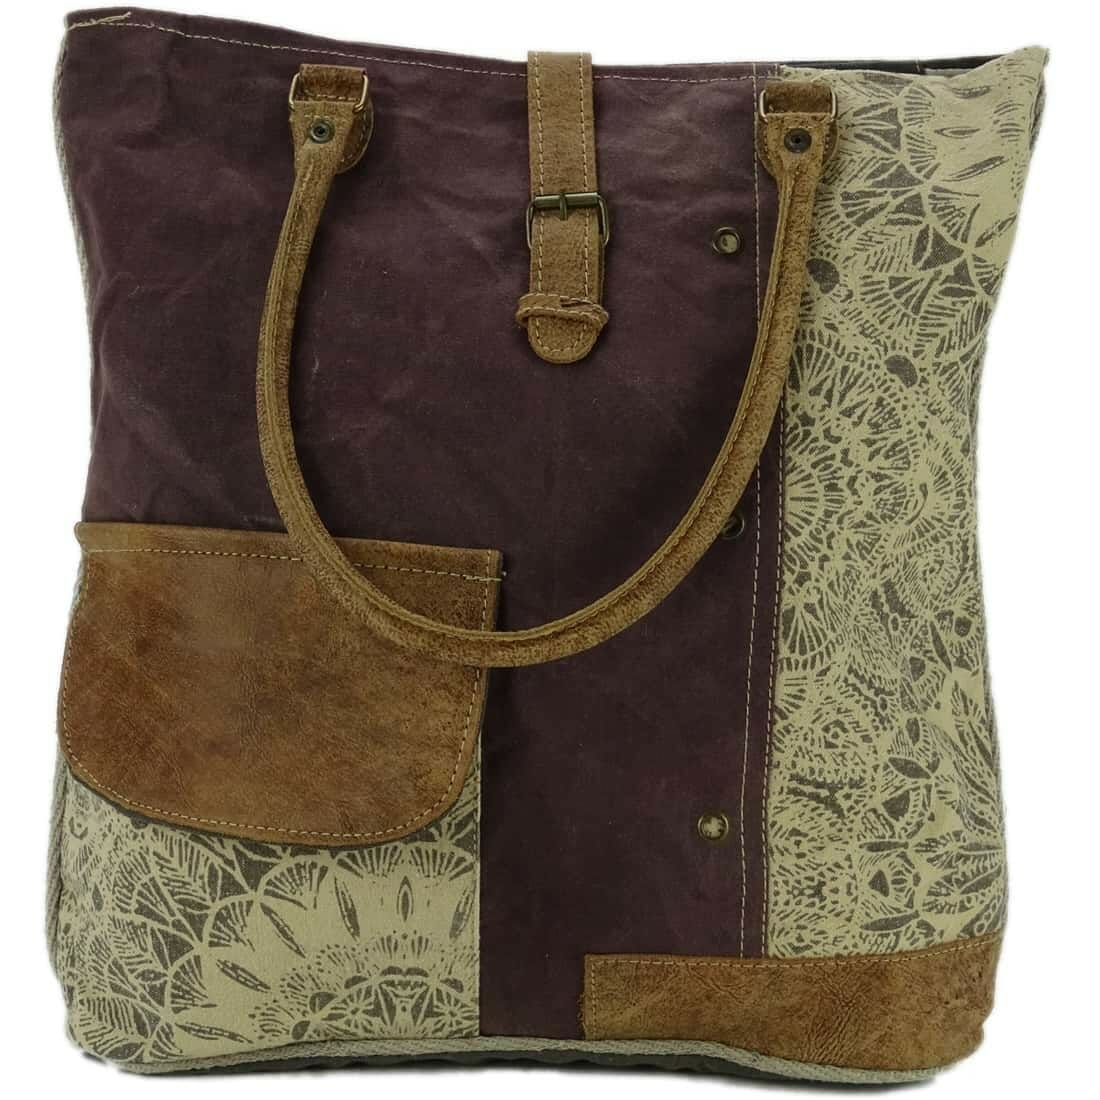 Myra Bag Shopper Gabrielle voorkant1